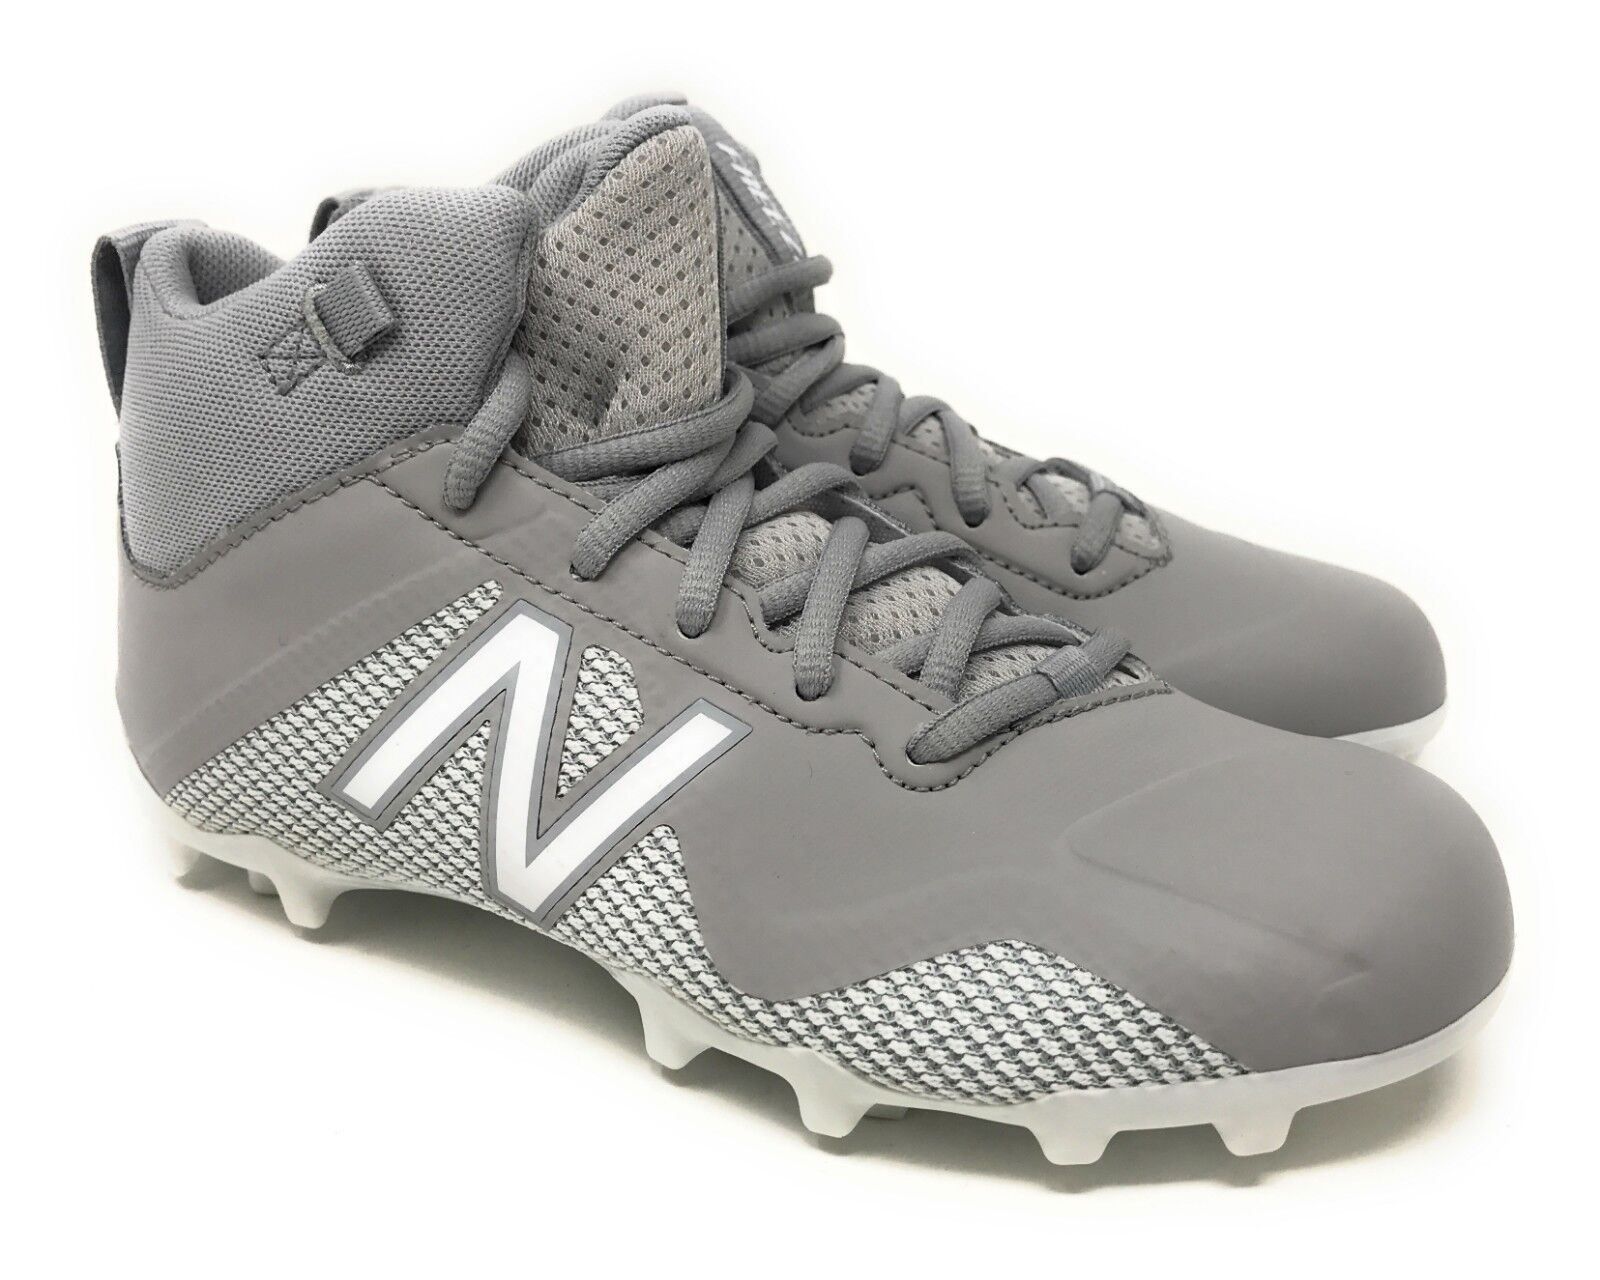 New Balance Freeze Lacrosse Cleats FREEZJGW Grey Kid's Size 2.5Y